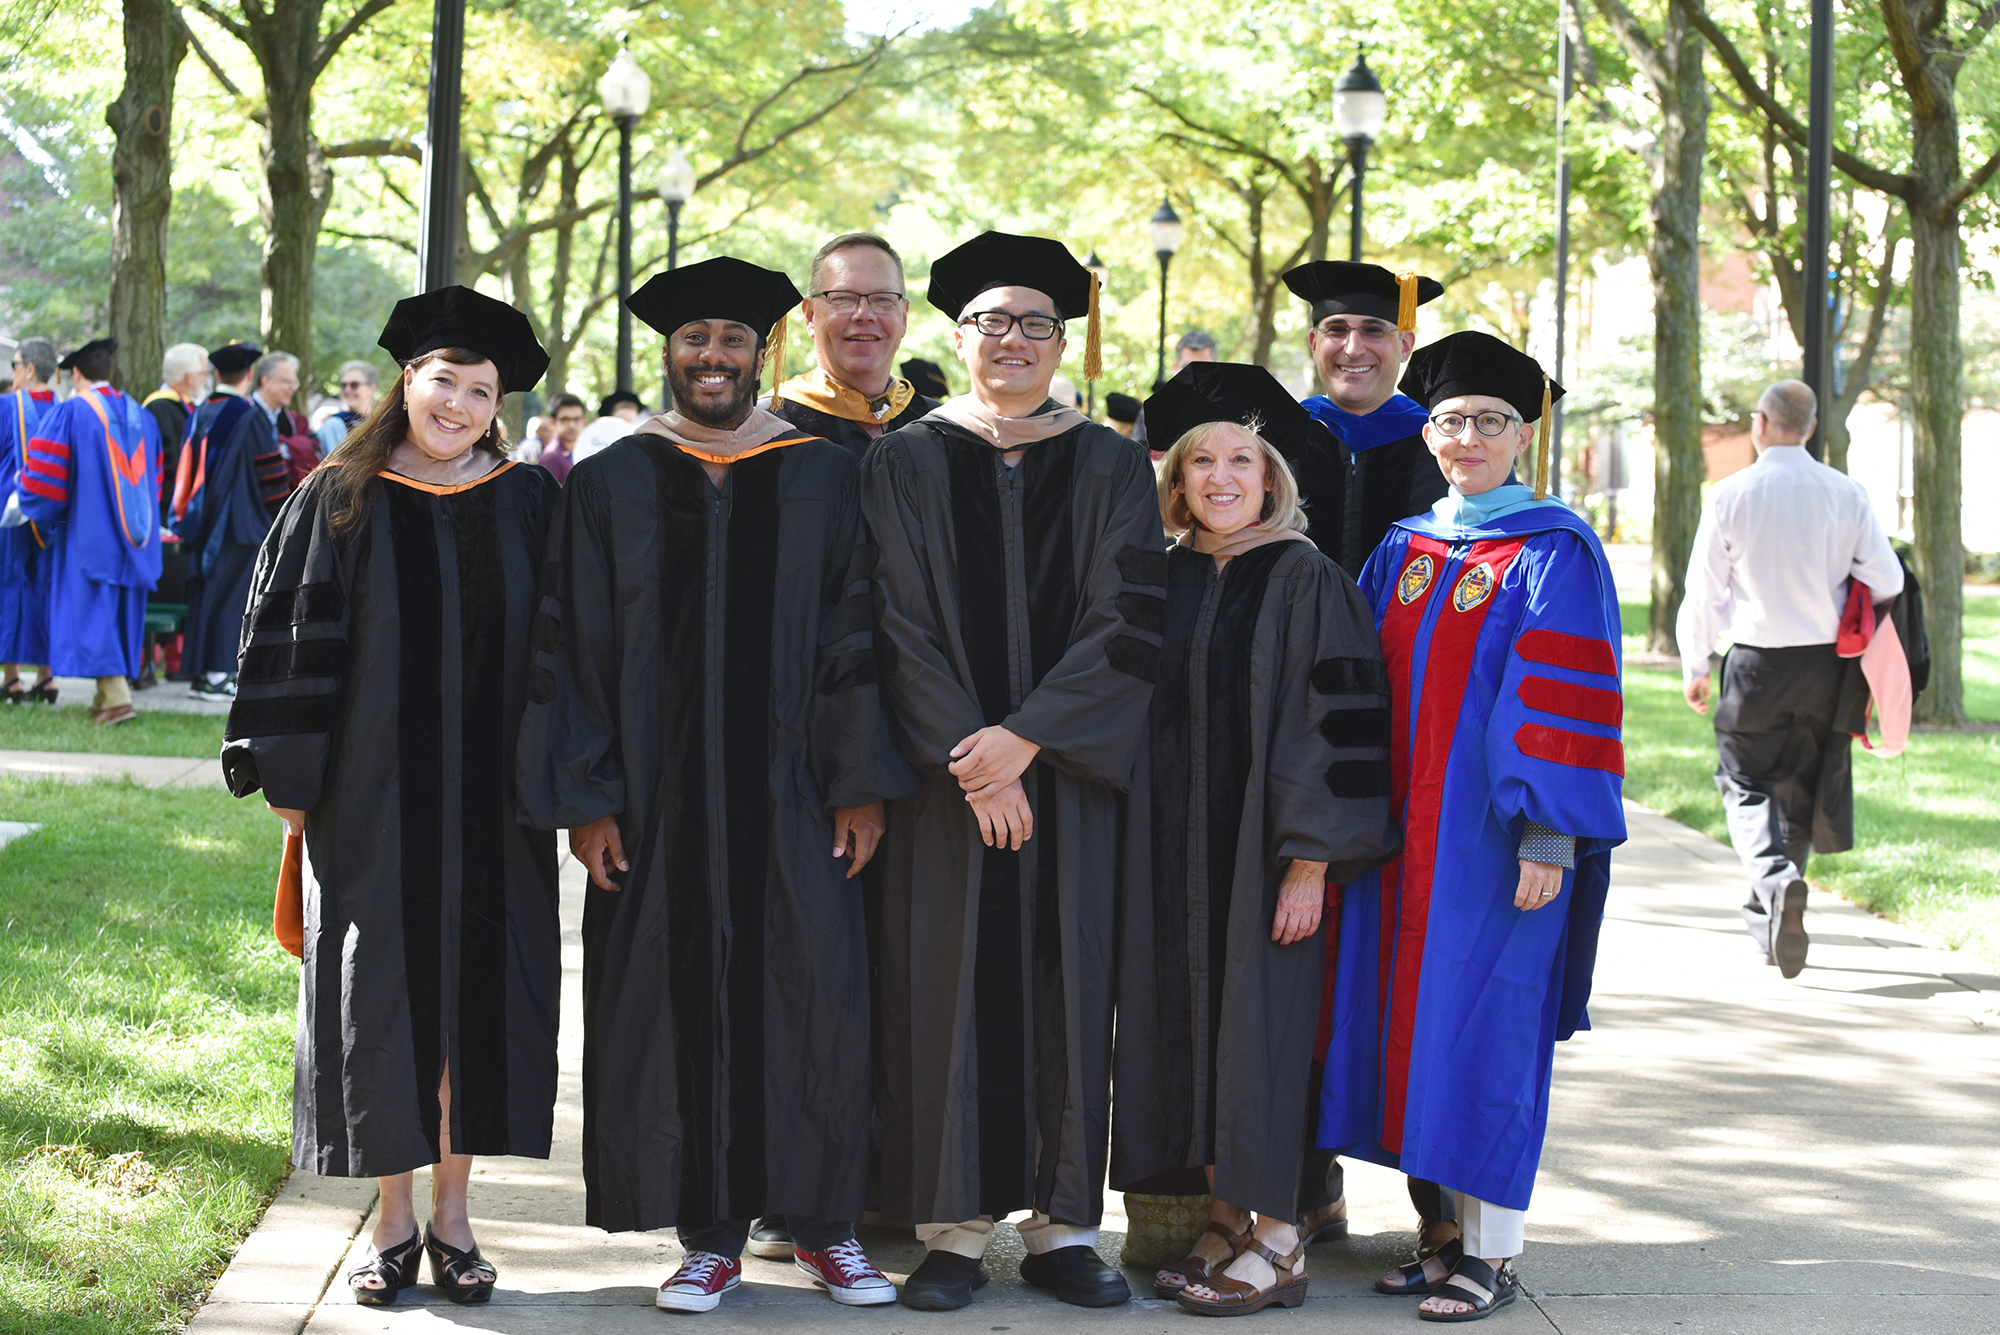 Driehaus College of Business Faculty and Staff Members at DePaul Academic Convocation